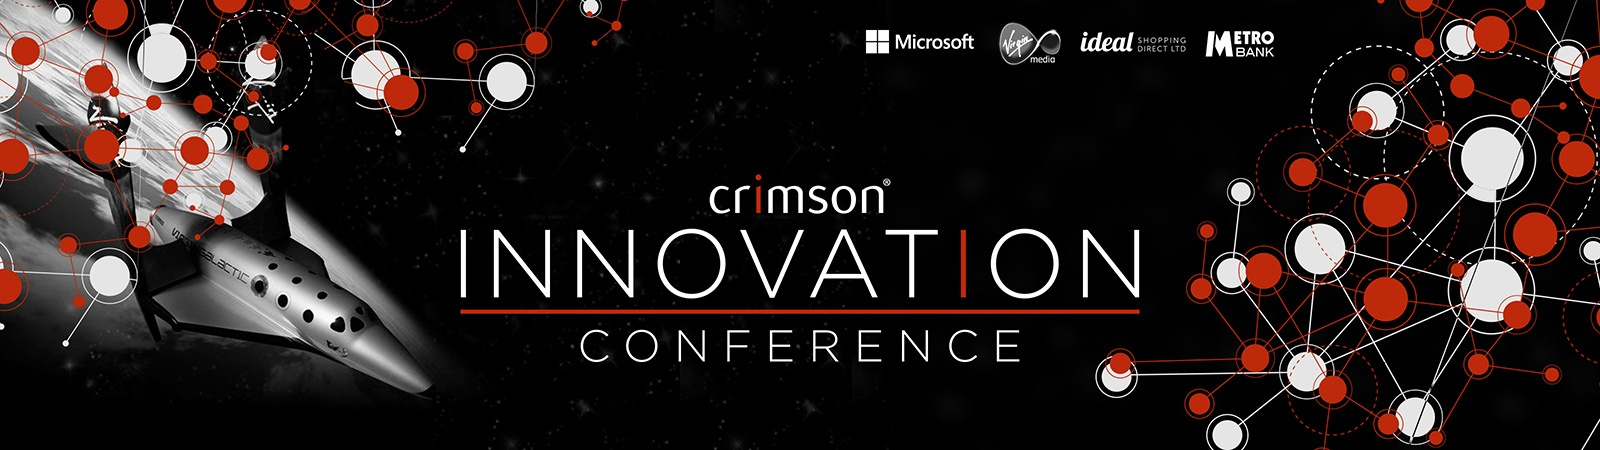 Crimson Innovation Conference 2015